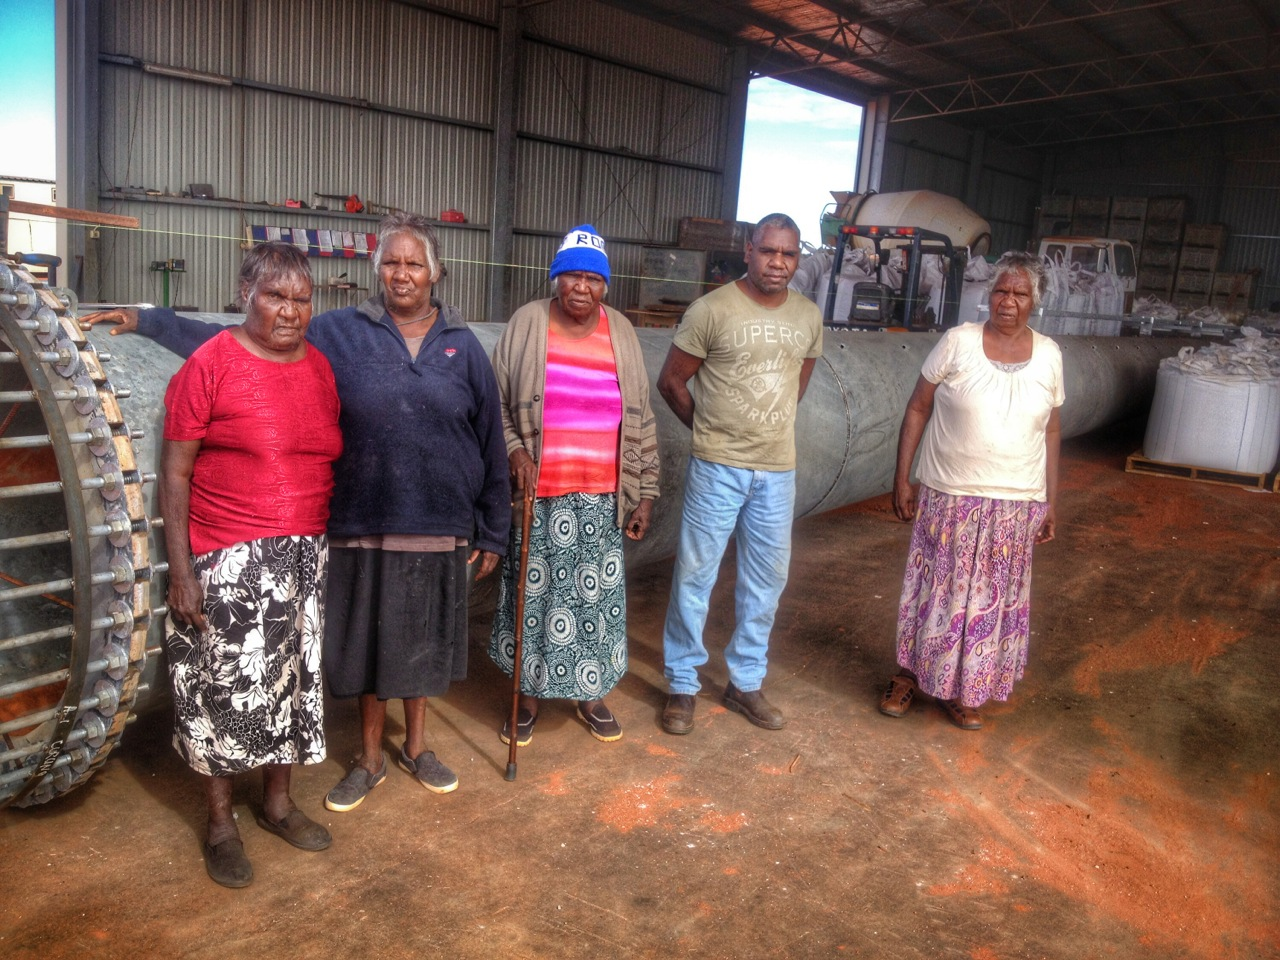 Pictured: Some of the Ali Curung locals gathering at the large steel Cross that they have a vision to see raised up in their community.